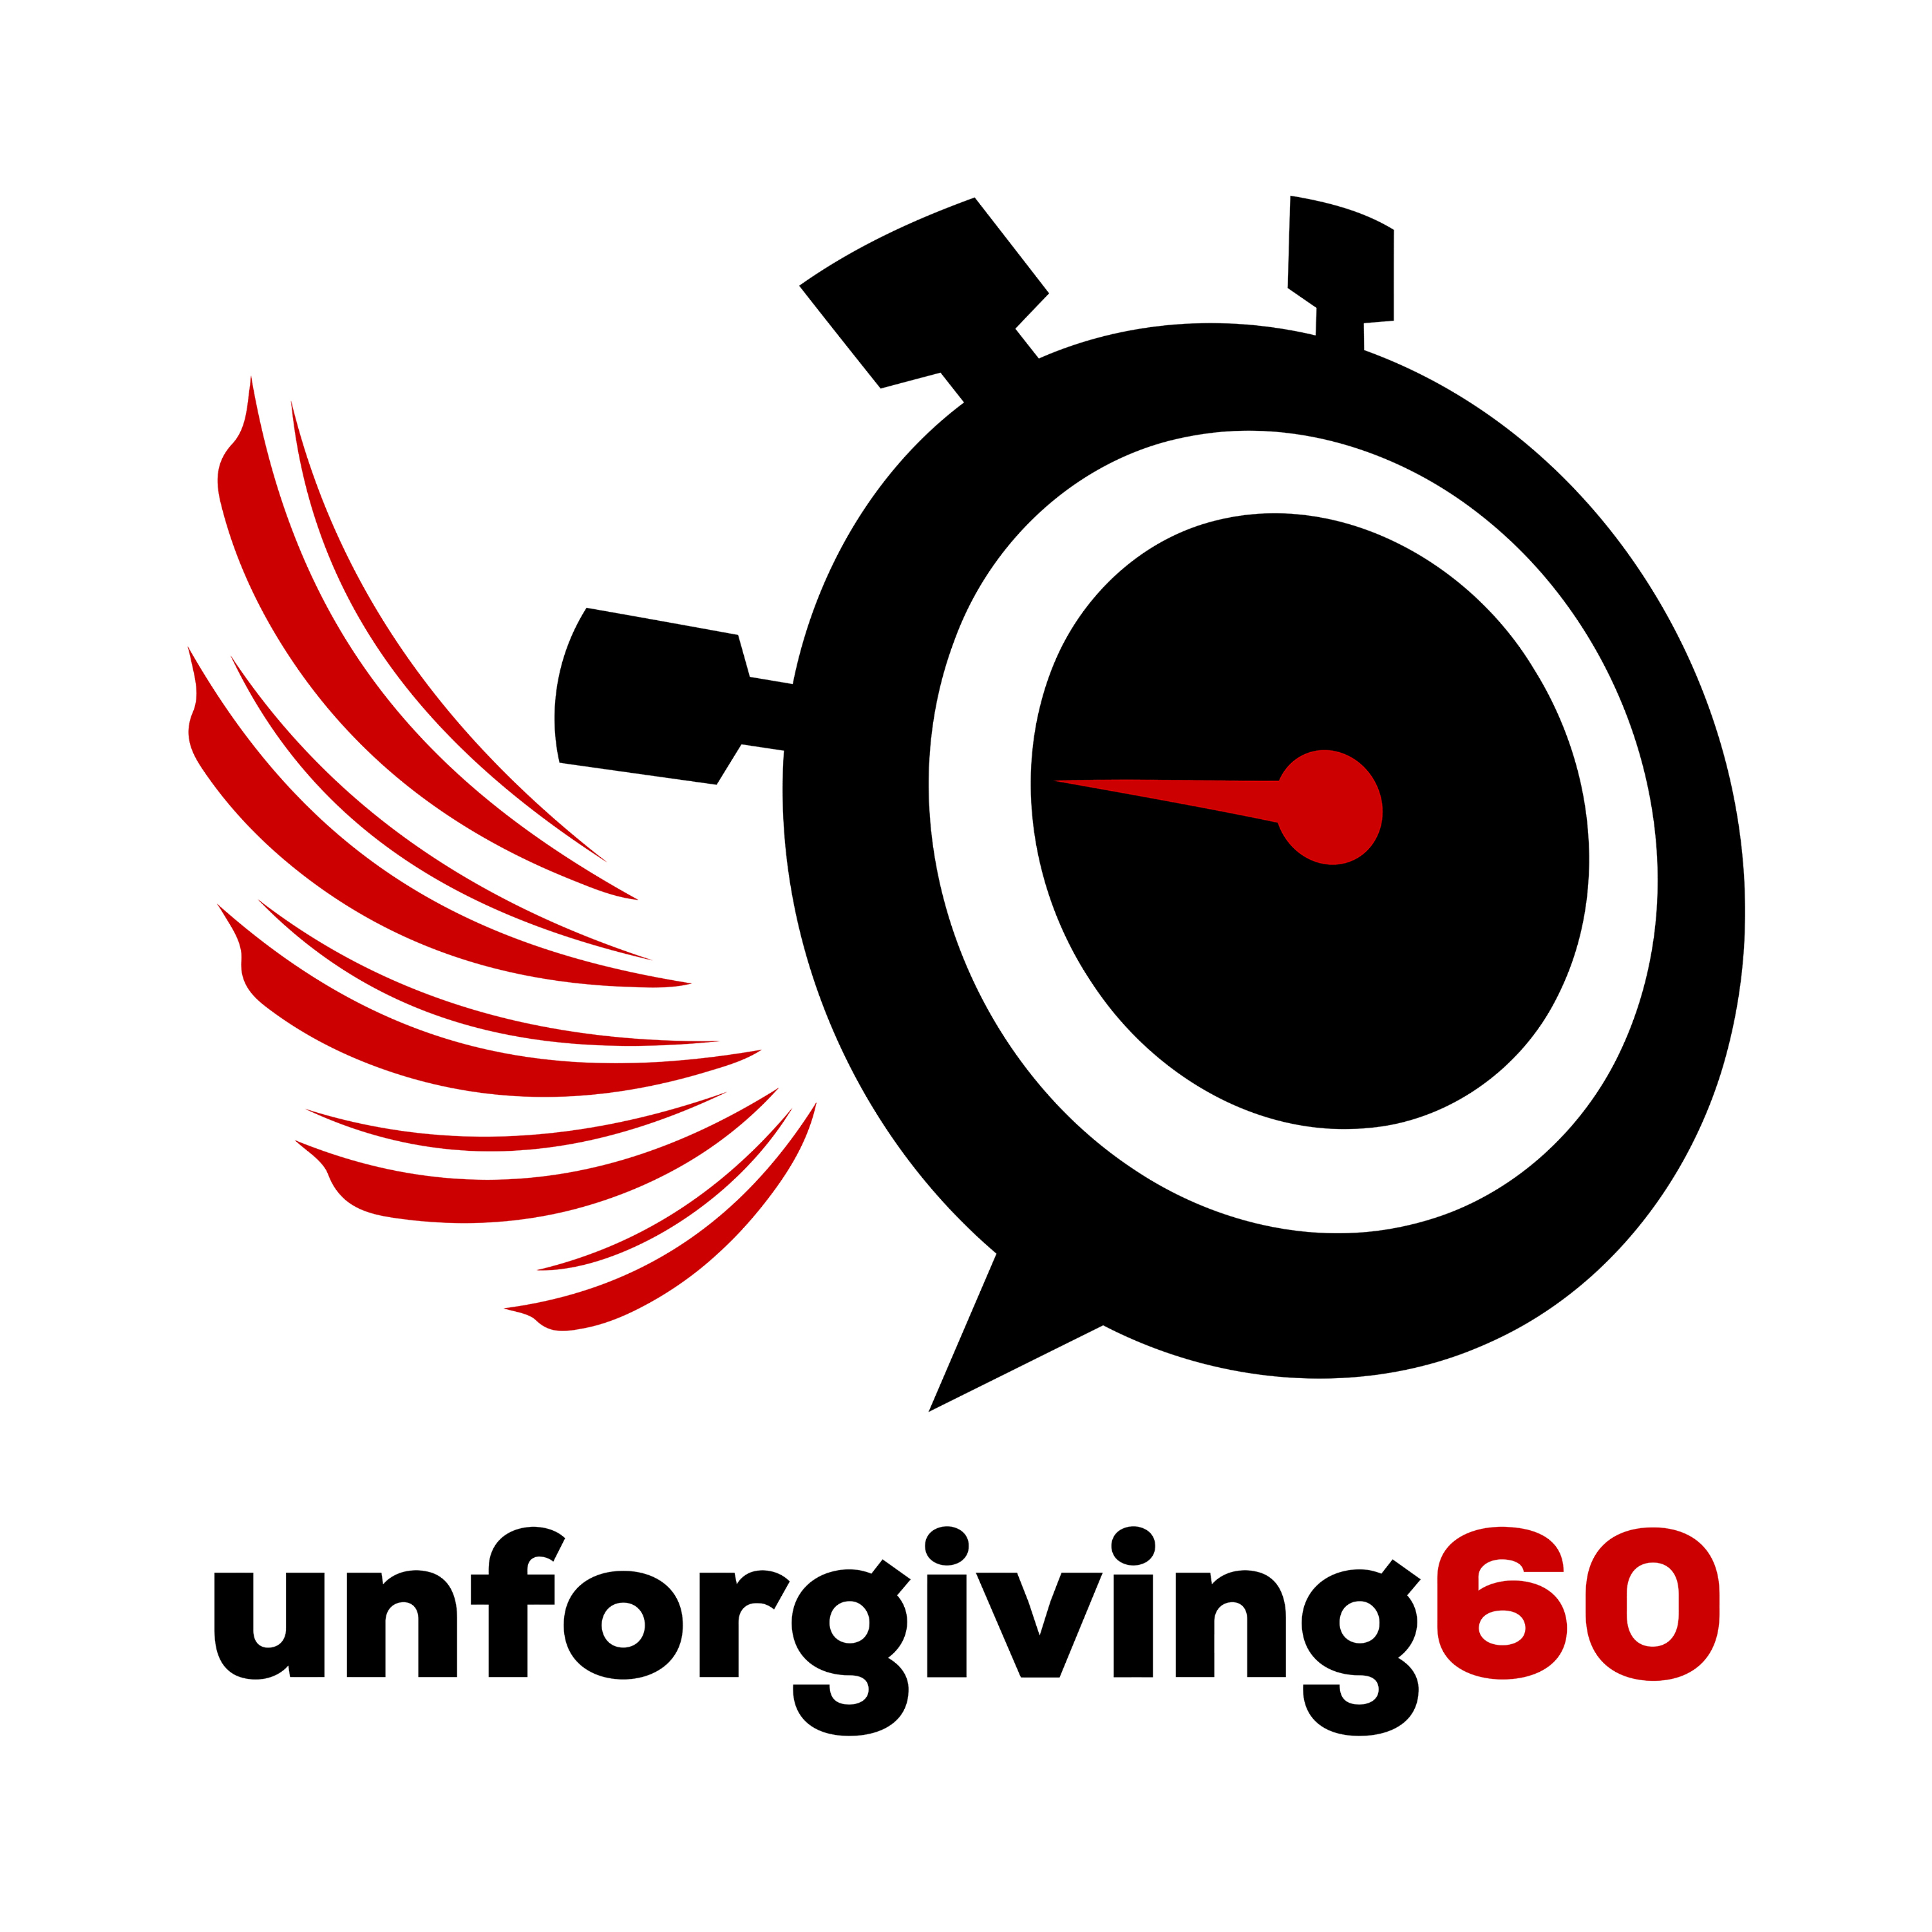 The Unforgiving60